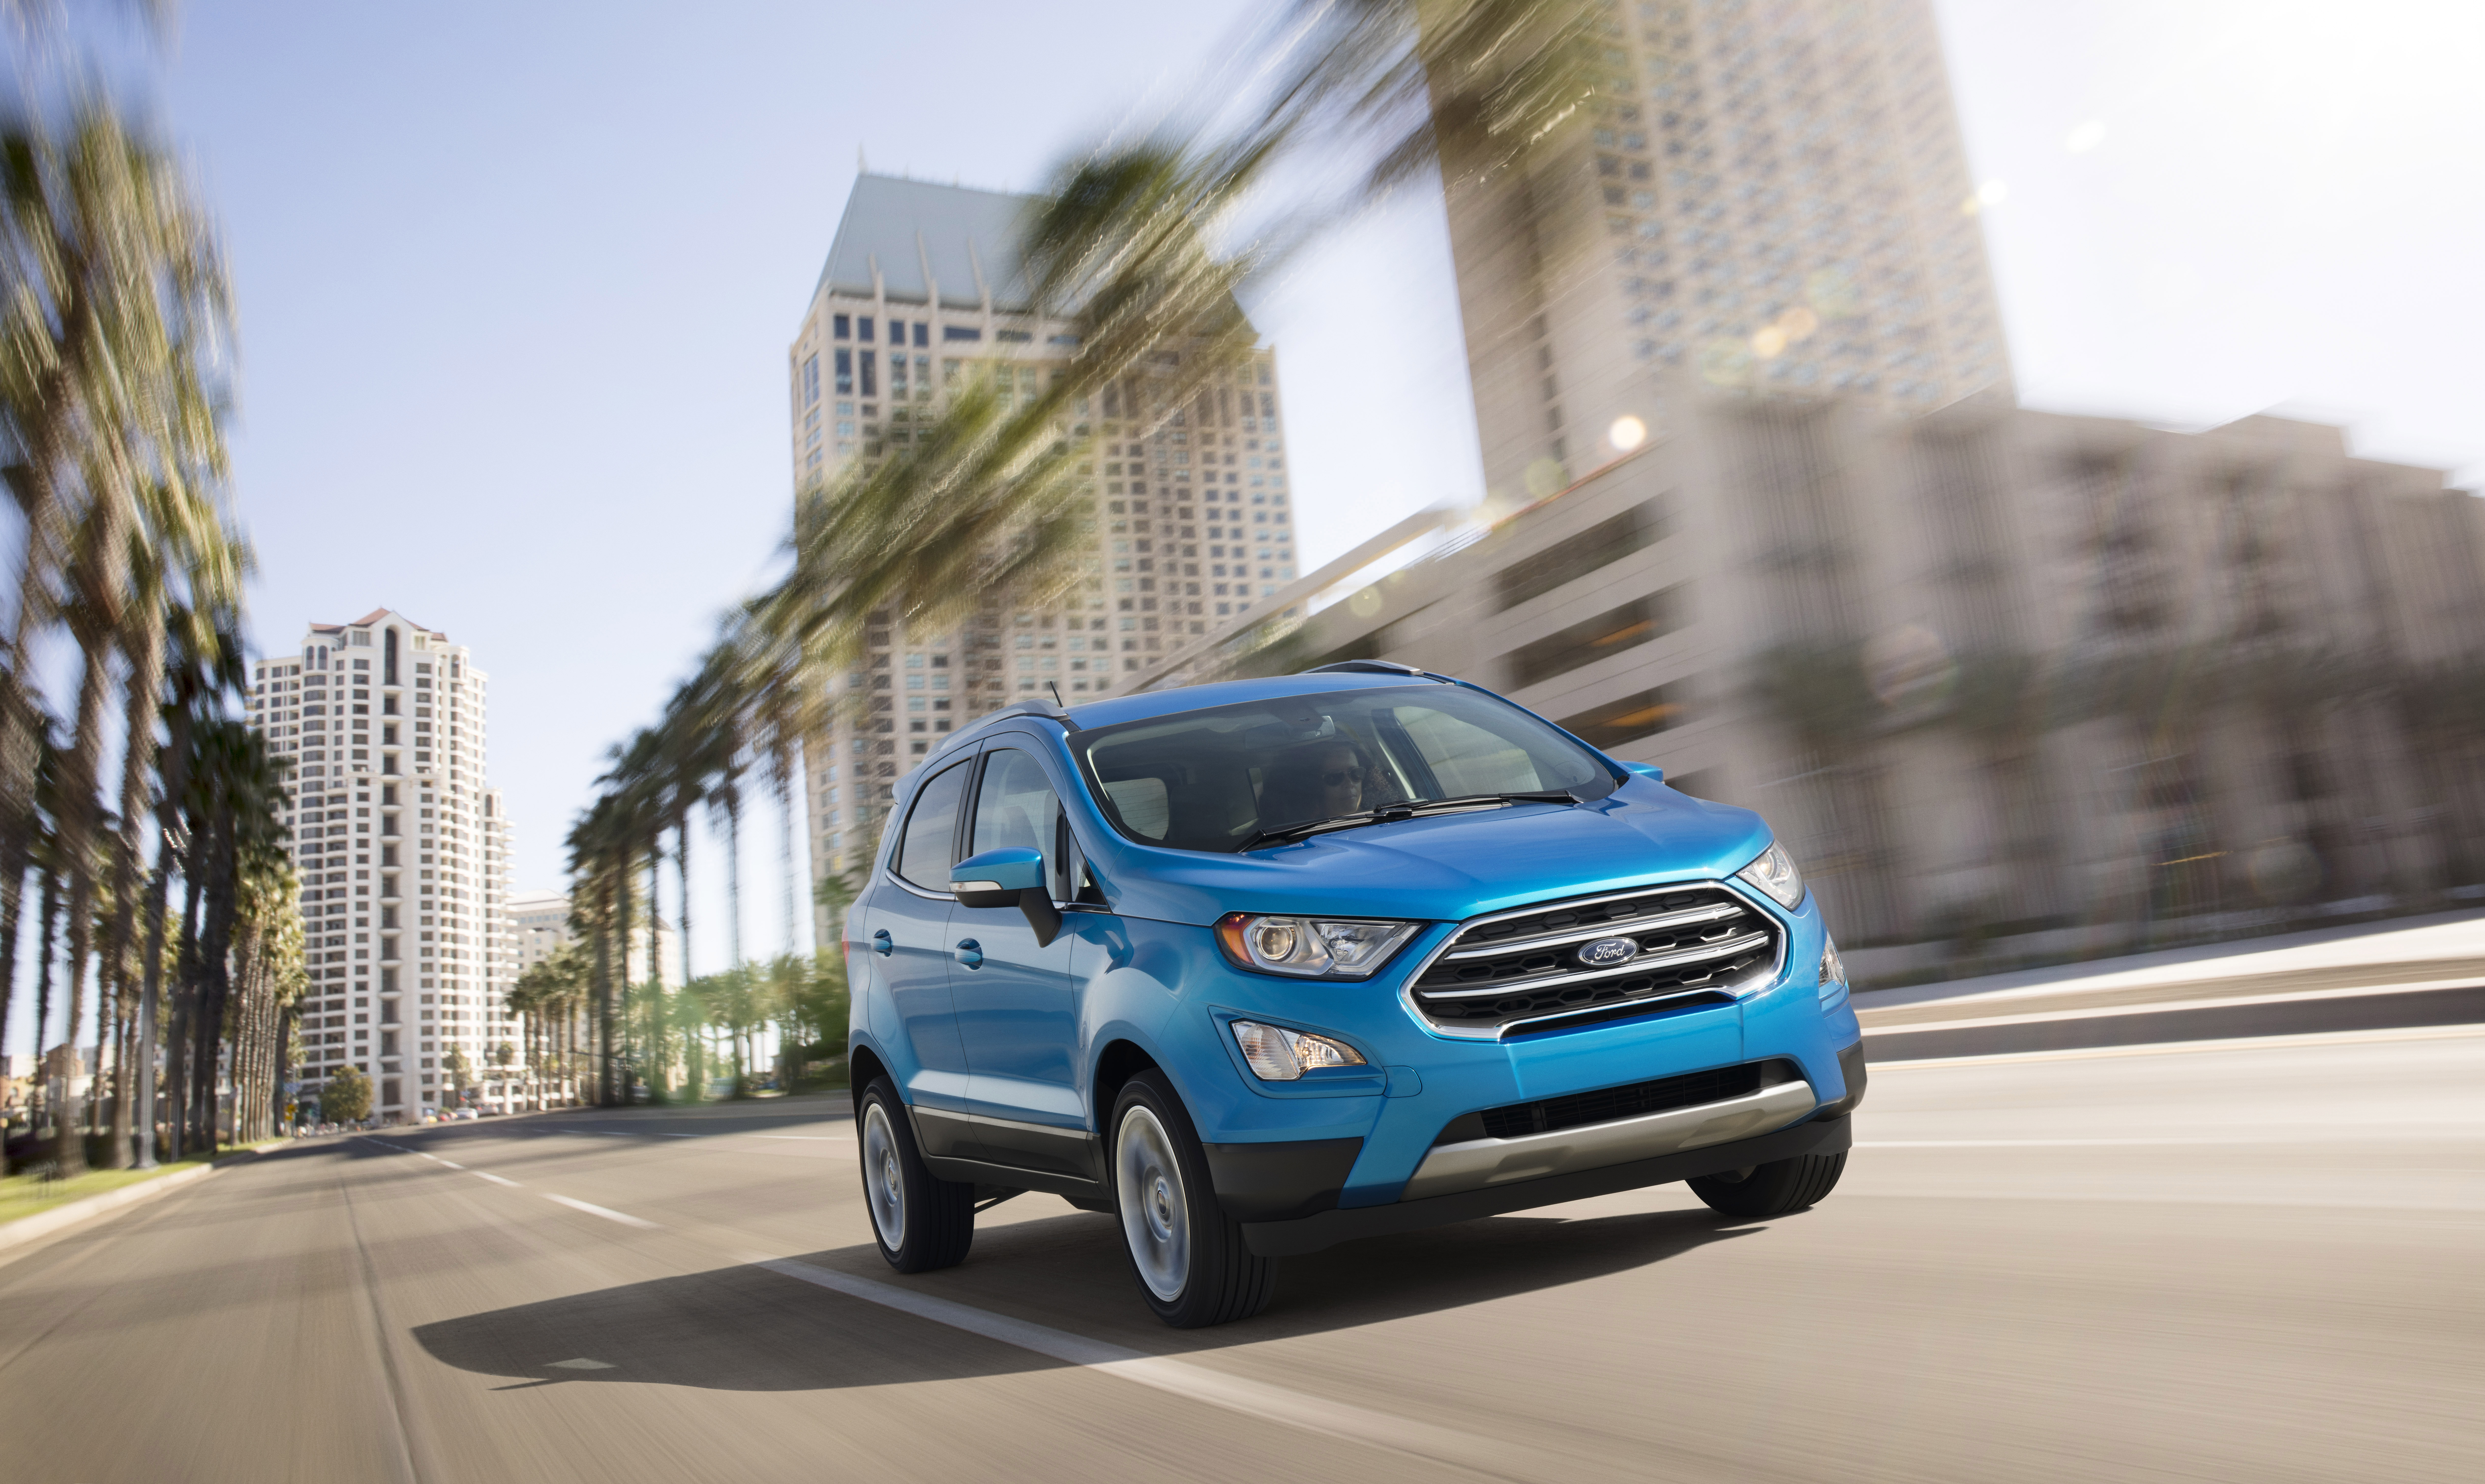 Elk Grove Ford >> The 2018 Ford Ecosport Elk Grove Ford